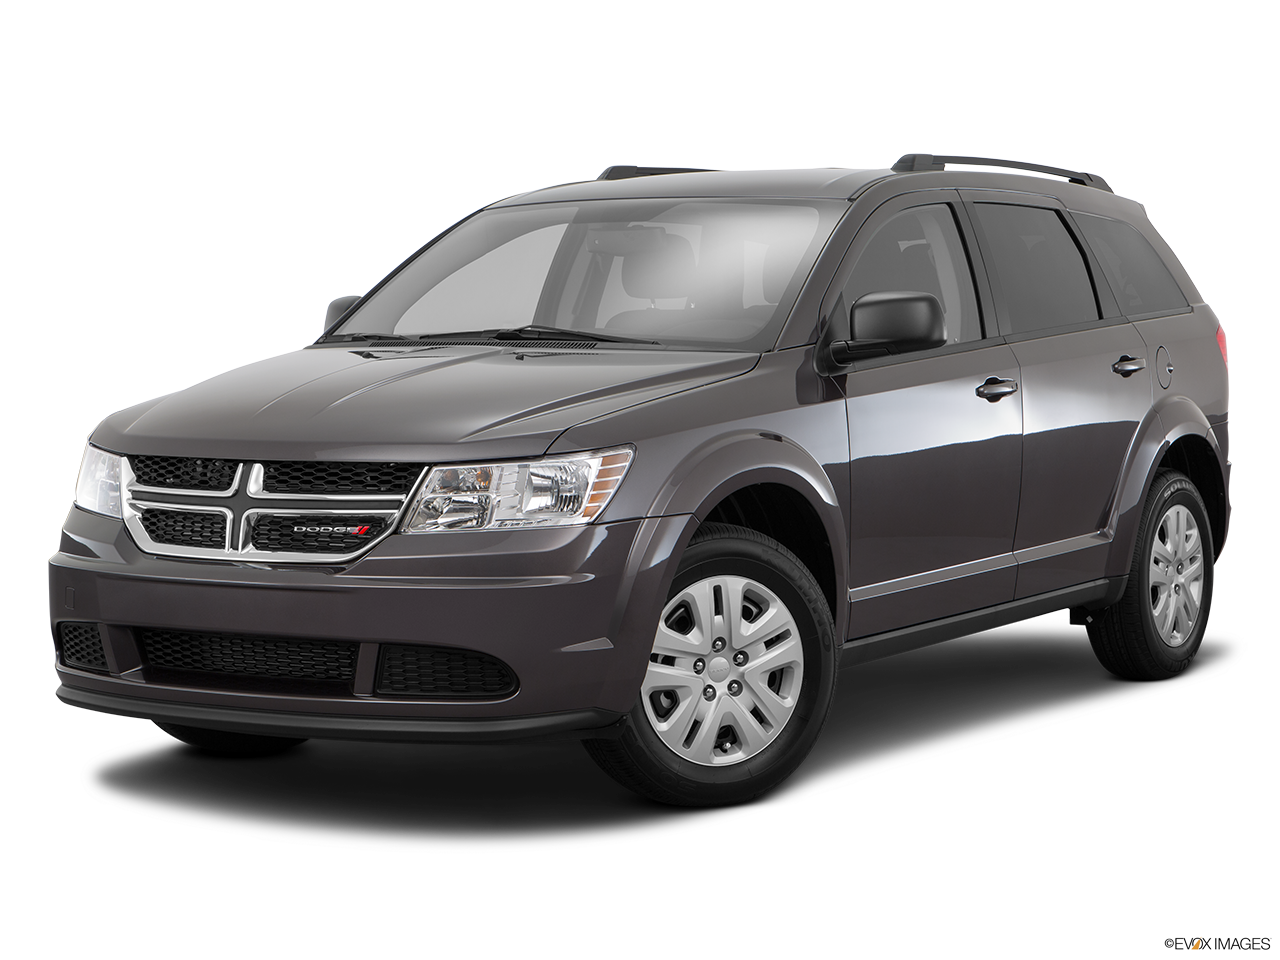 Test Drive A 2016 Dodge Journey at Nashville Chrysler Dodge Jeep RAM in Antioch